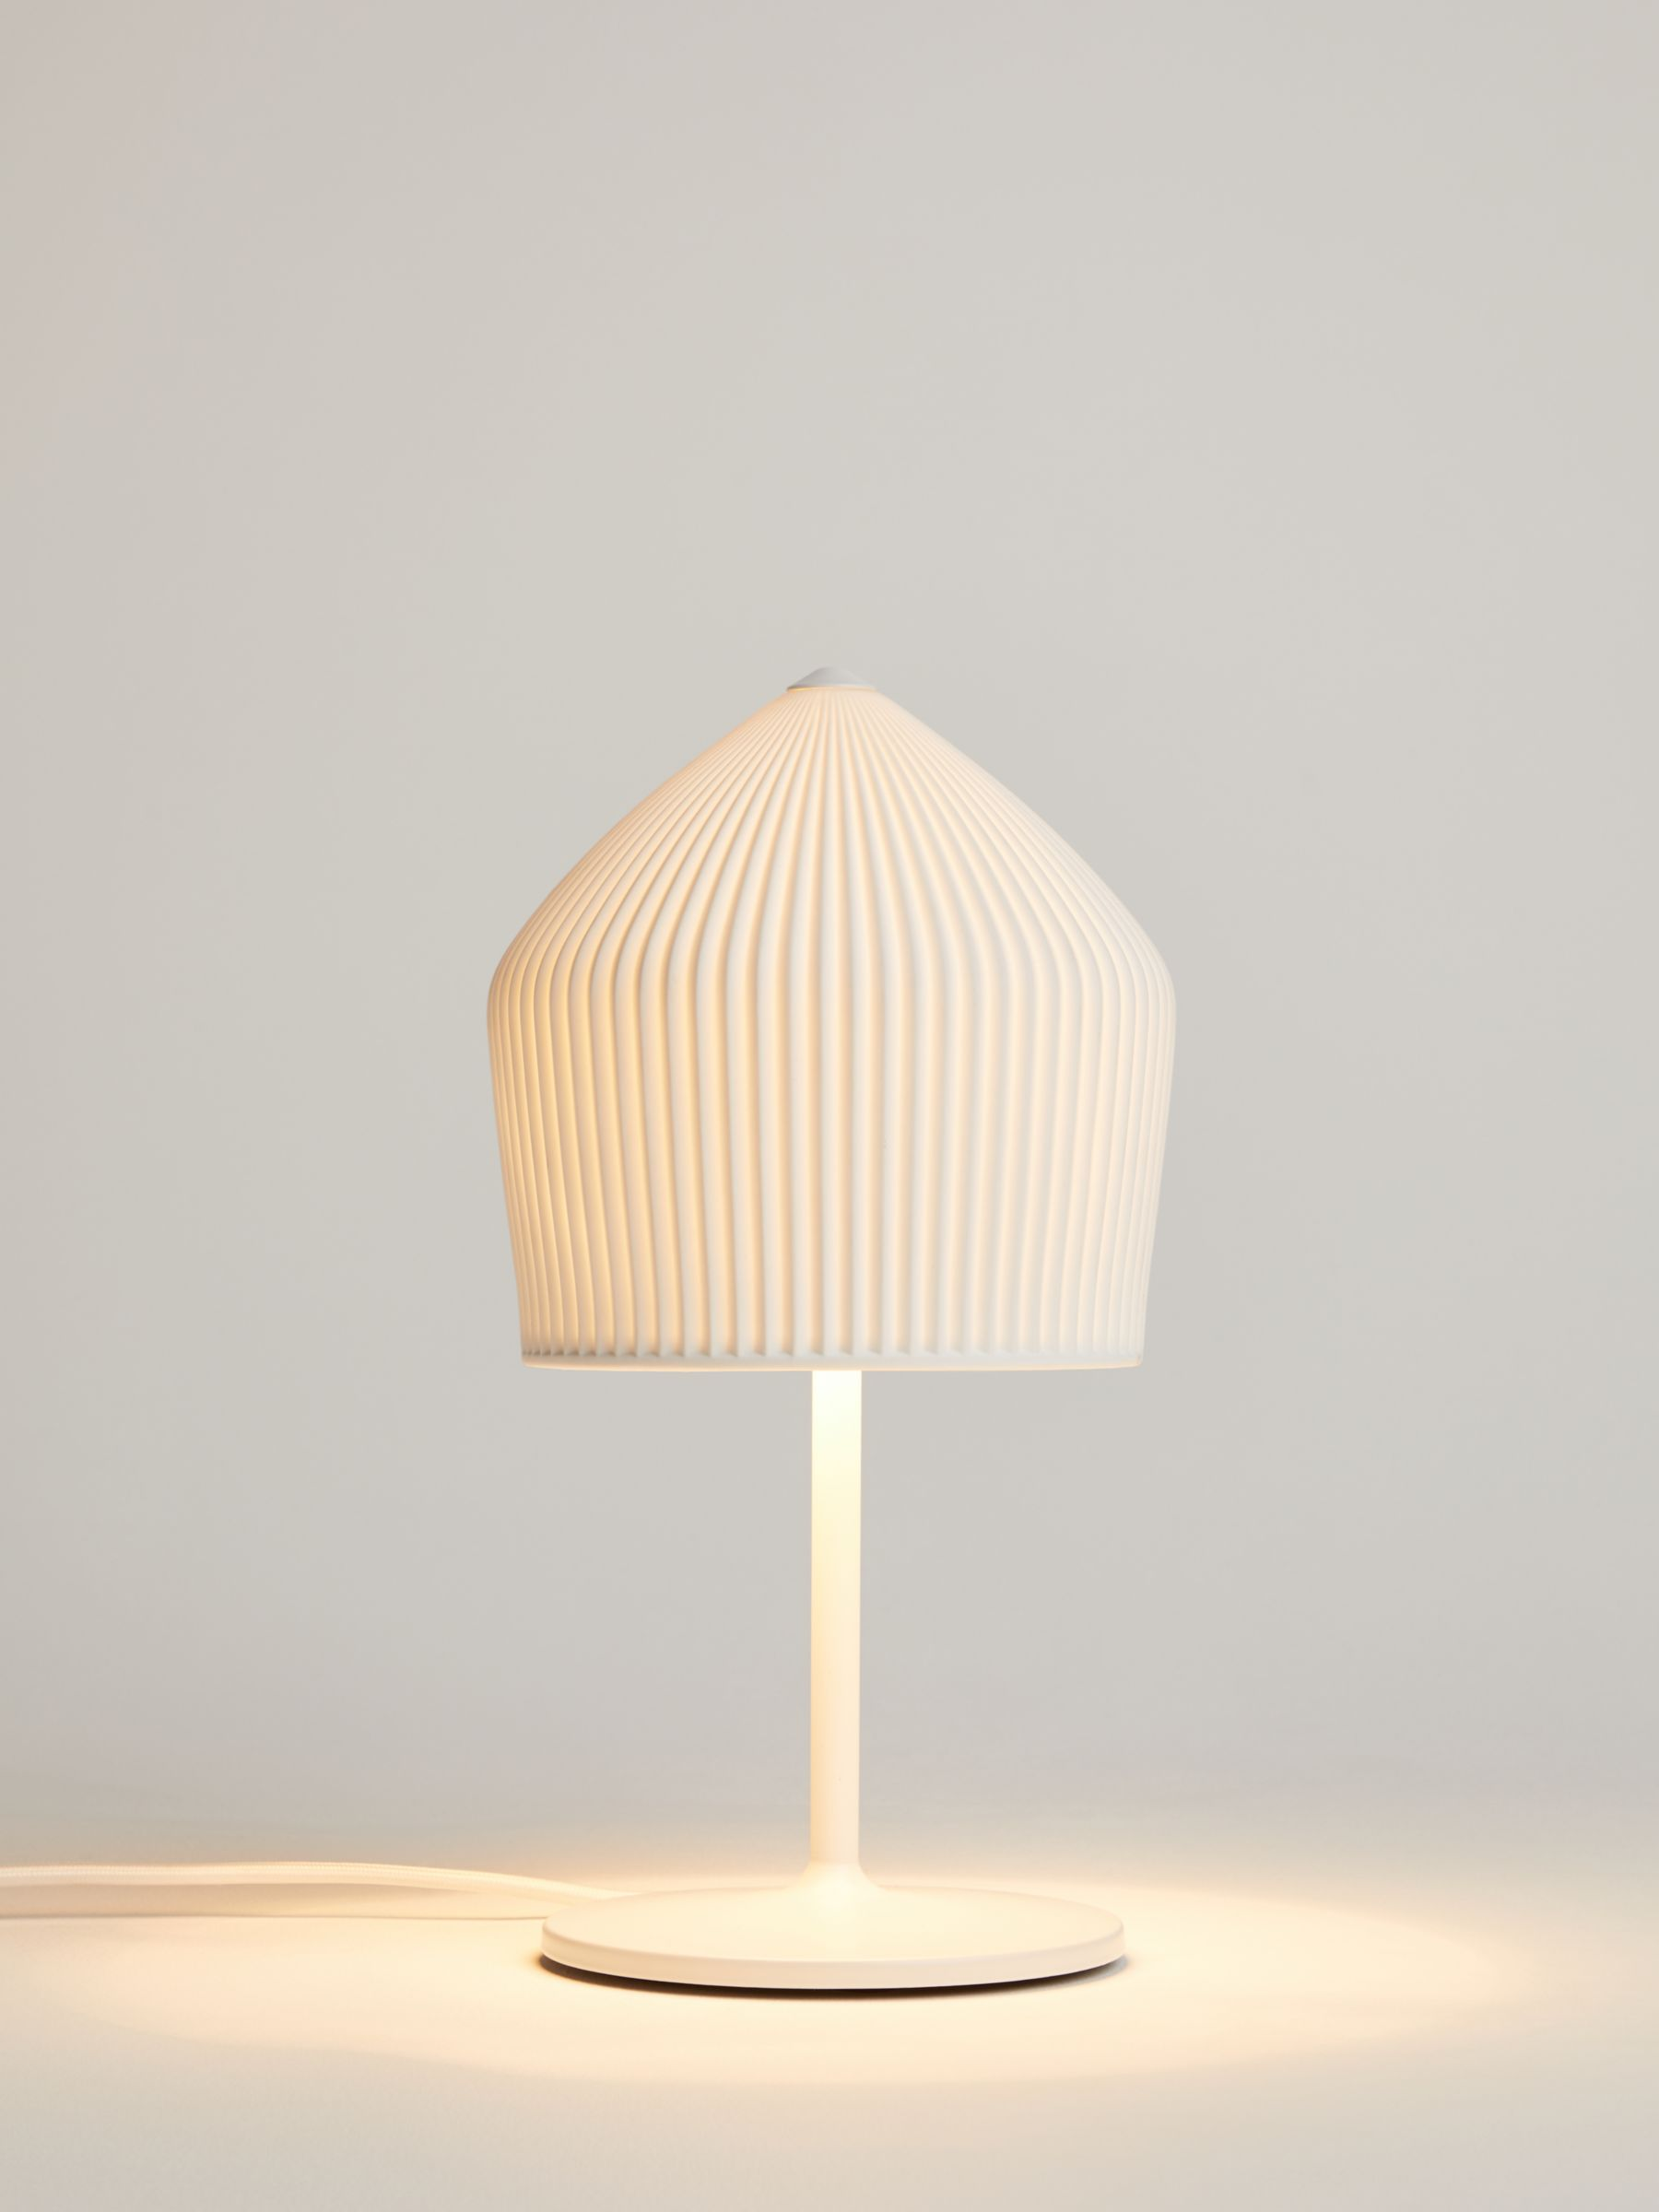 Nordlux Nordlux Design For The People Reykjavik Table Lamp, White